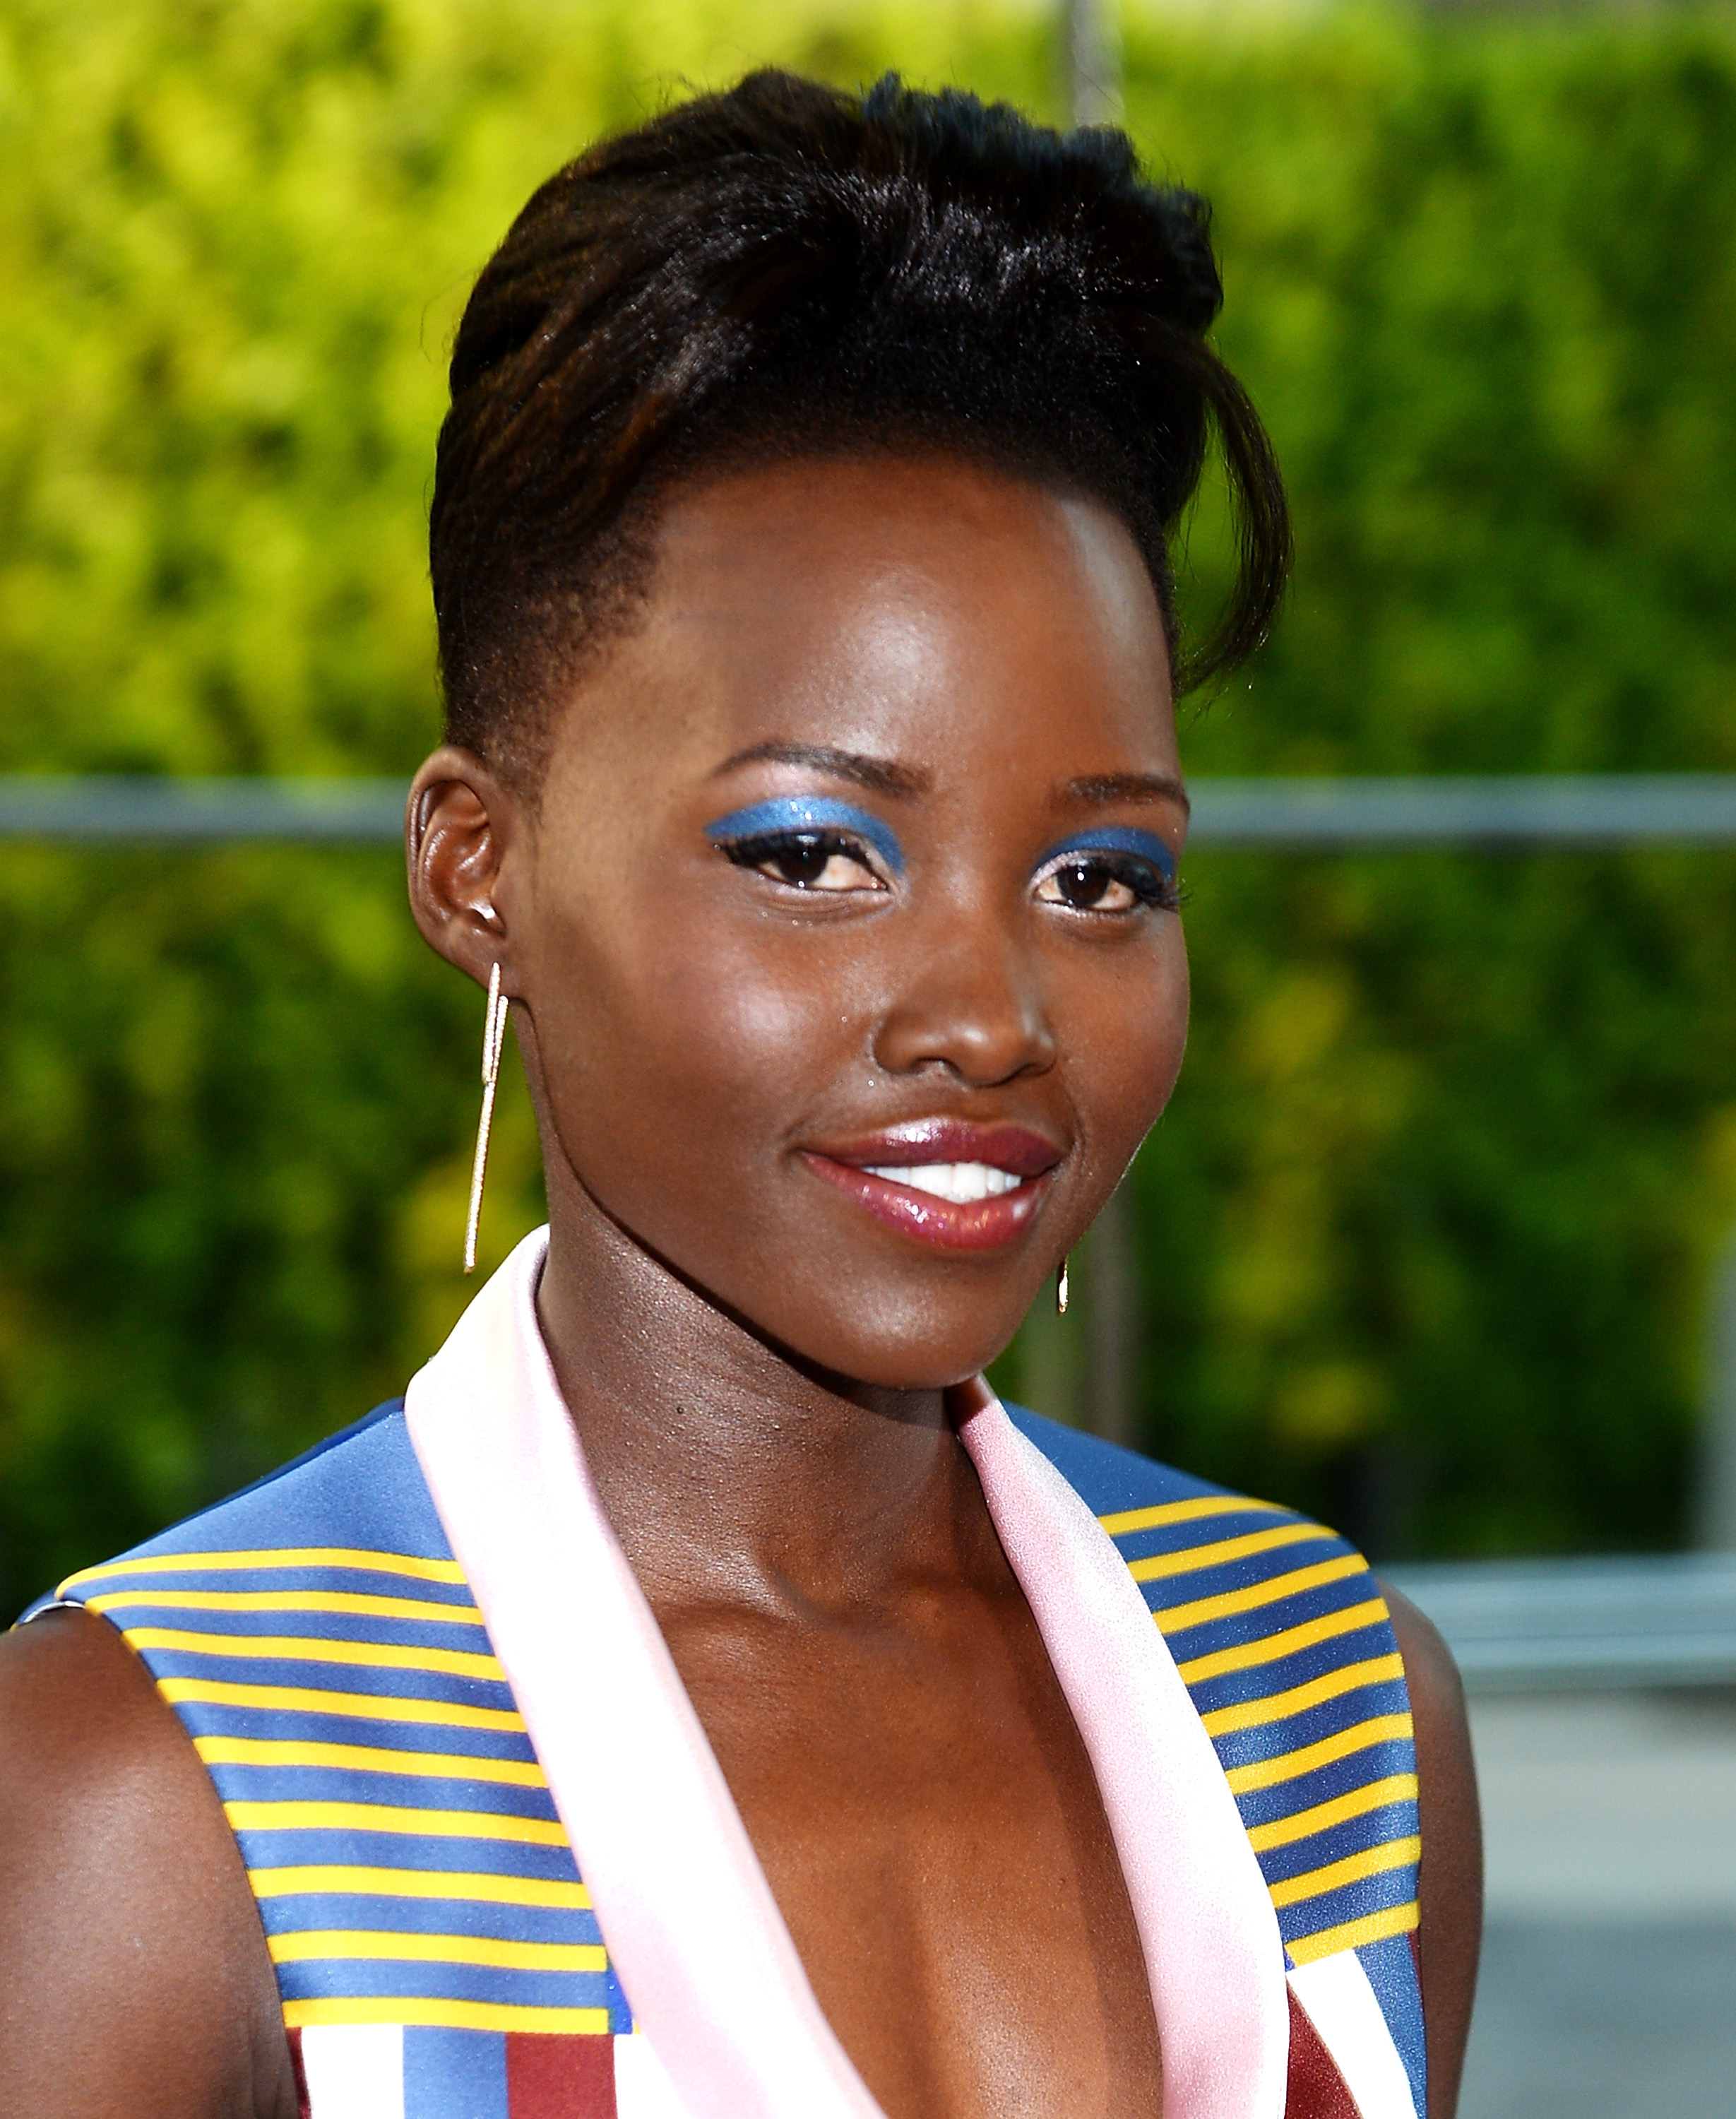 Actress Lupita Nyong'o attends the 2014 CFDA Fashion Awards at Alice Tully Hall in New York City on  June 2, 2014.